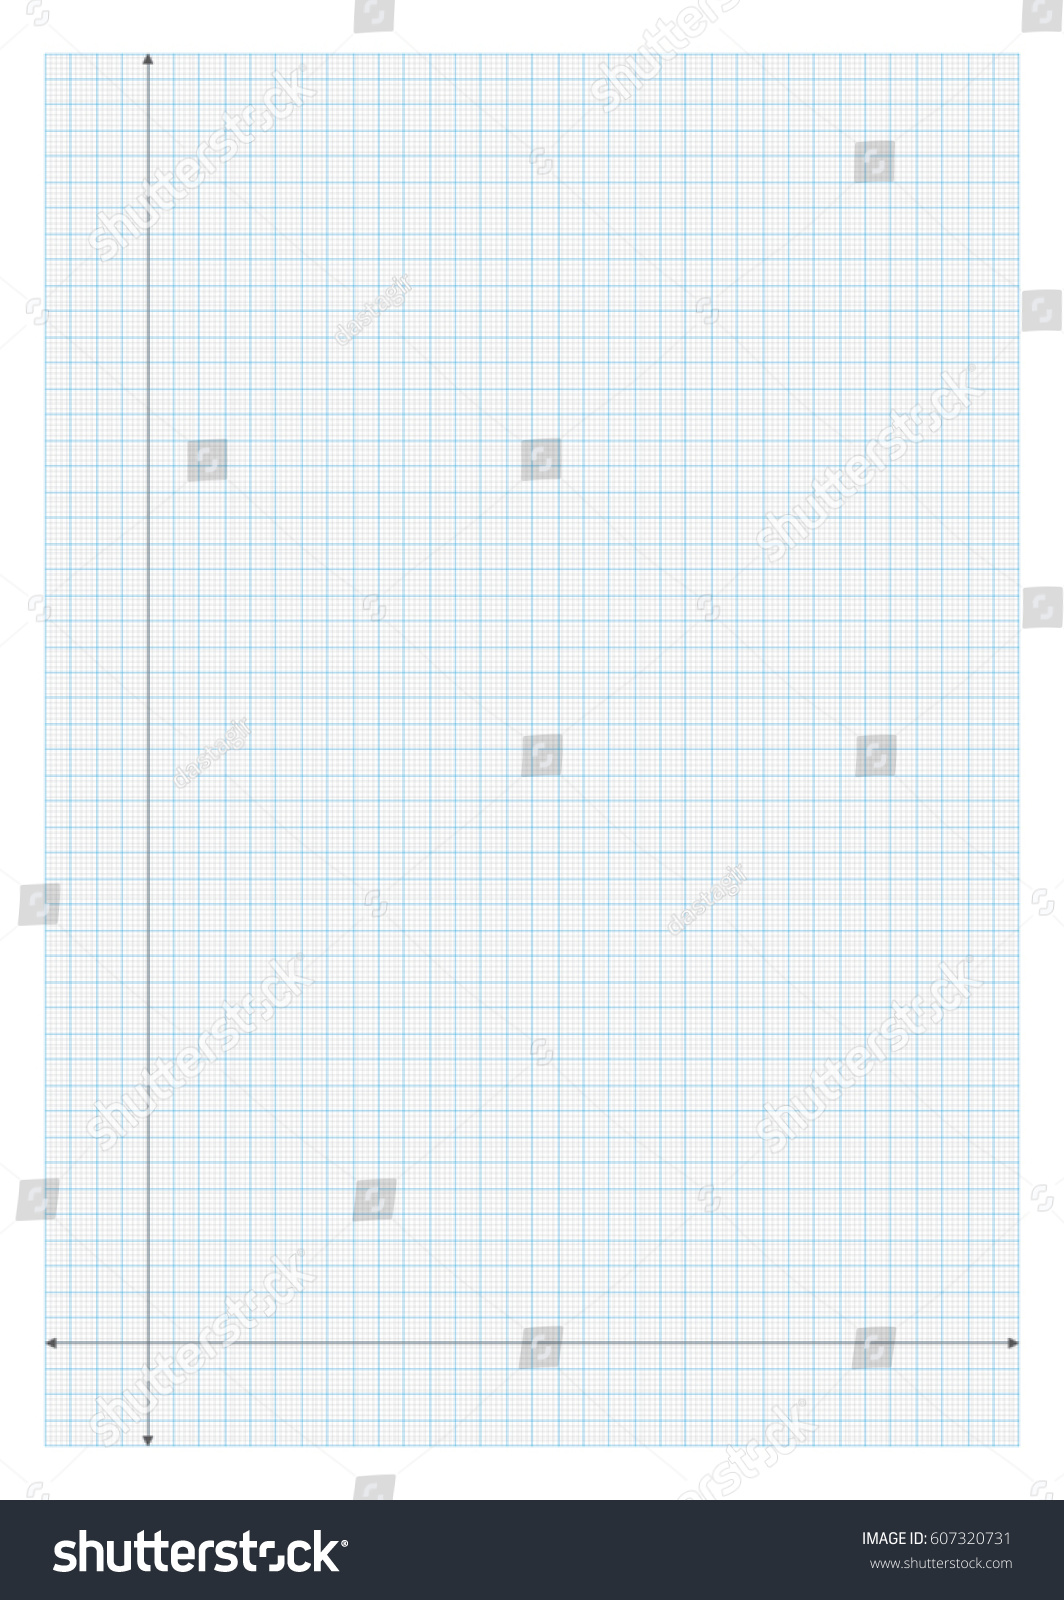 A4 Size Graph Paper X And Y Axis Plot